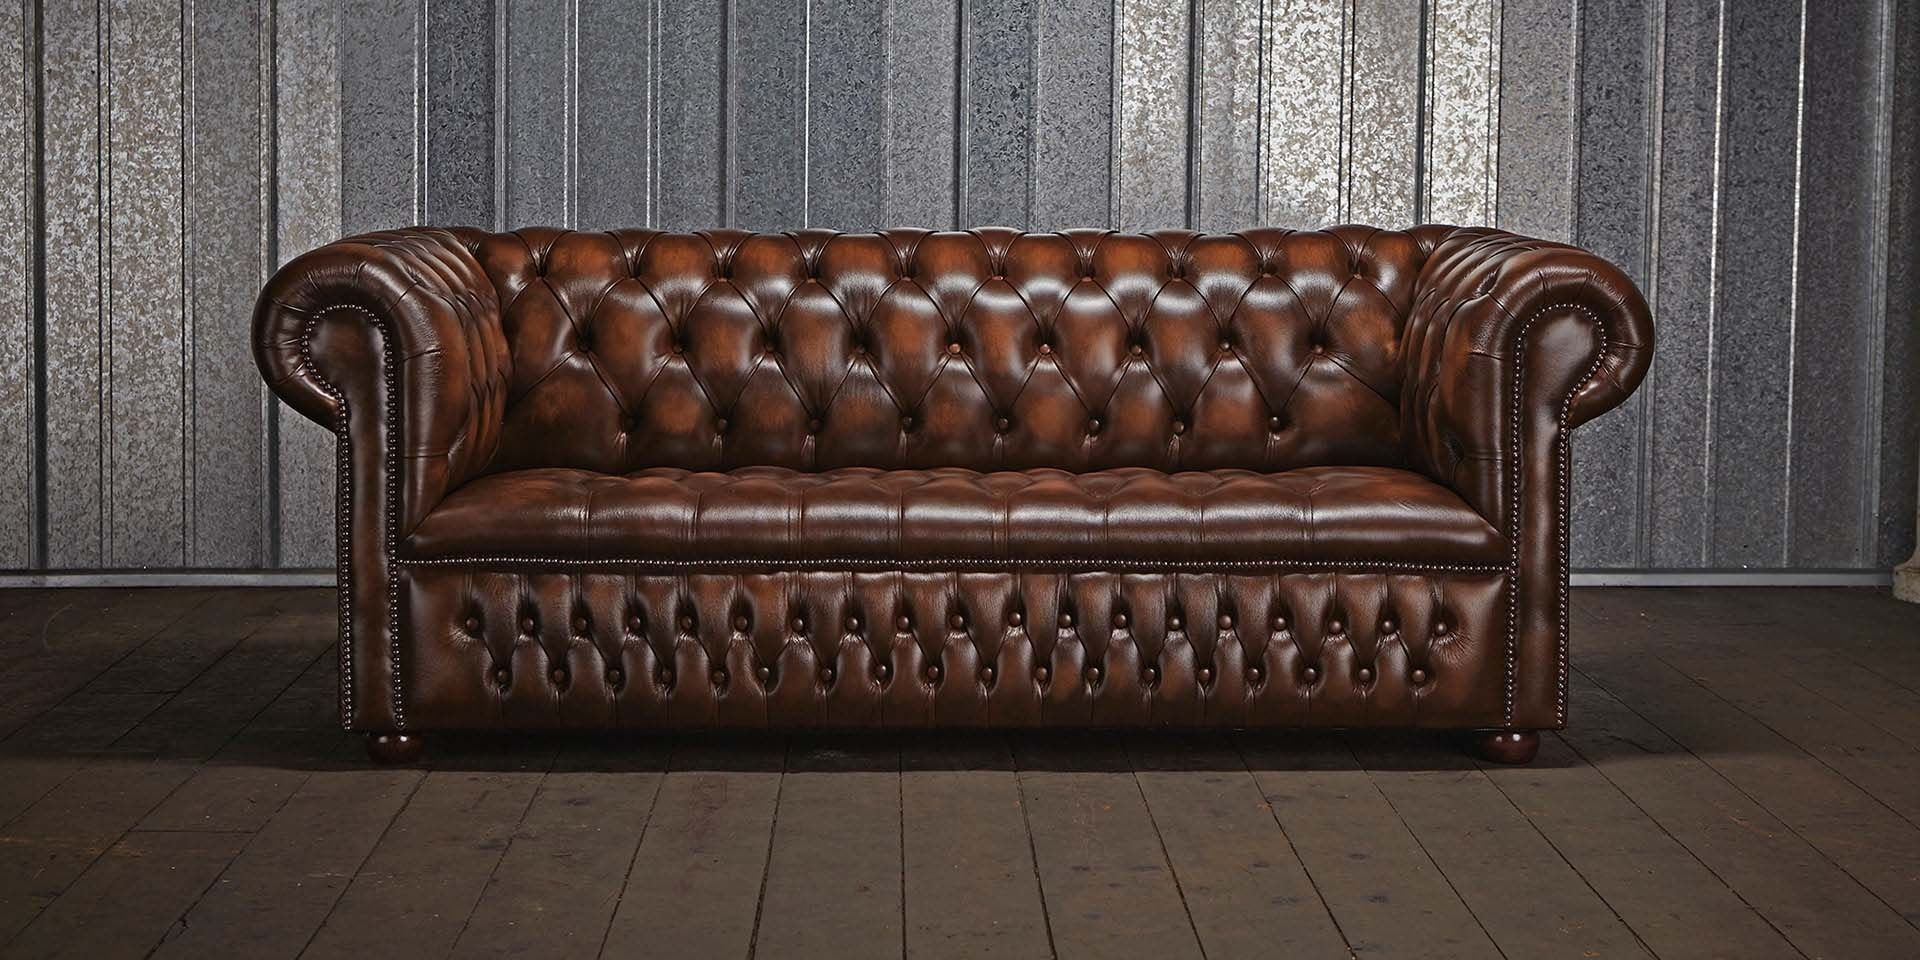 - Gallery Of Craigslist Leather Sofas (View 20 Of 20 Photos)